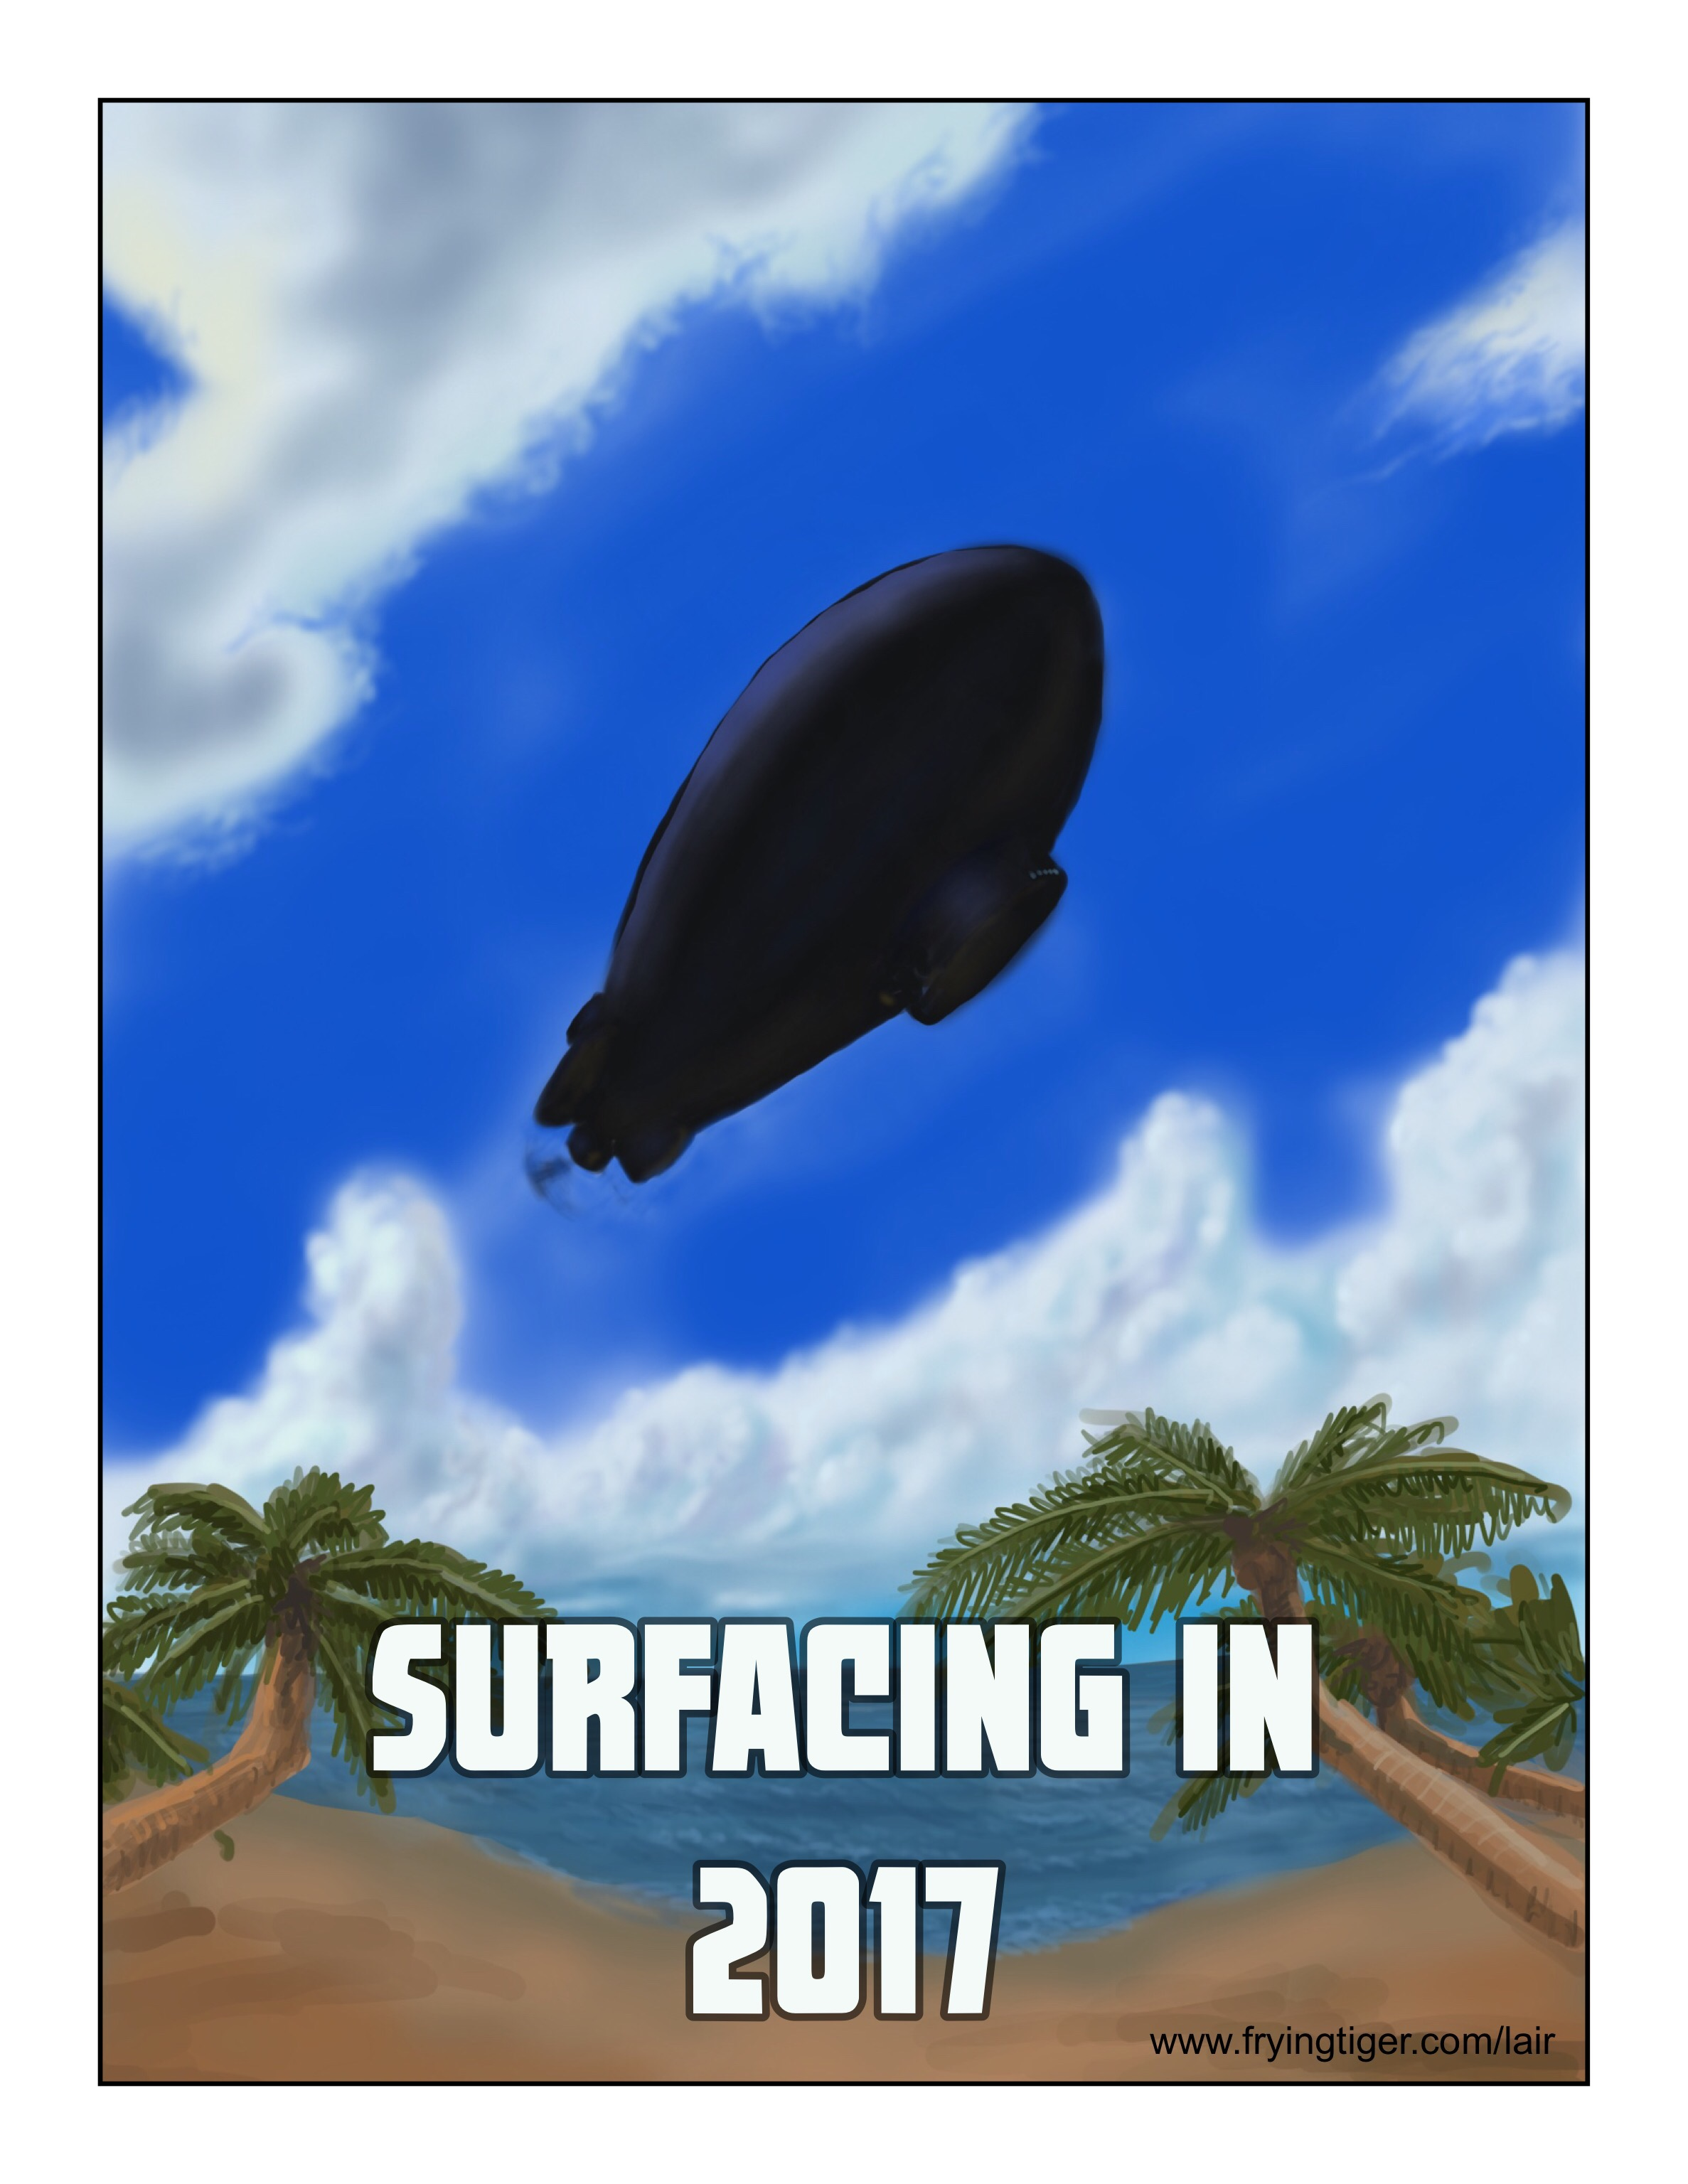 Coming in 2017